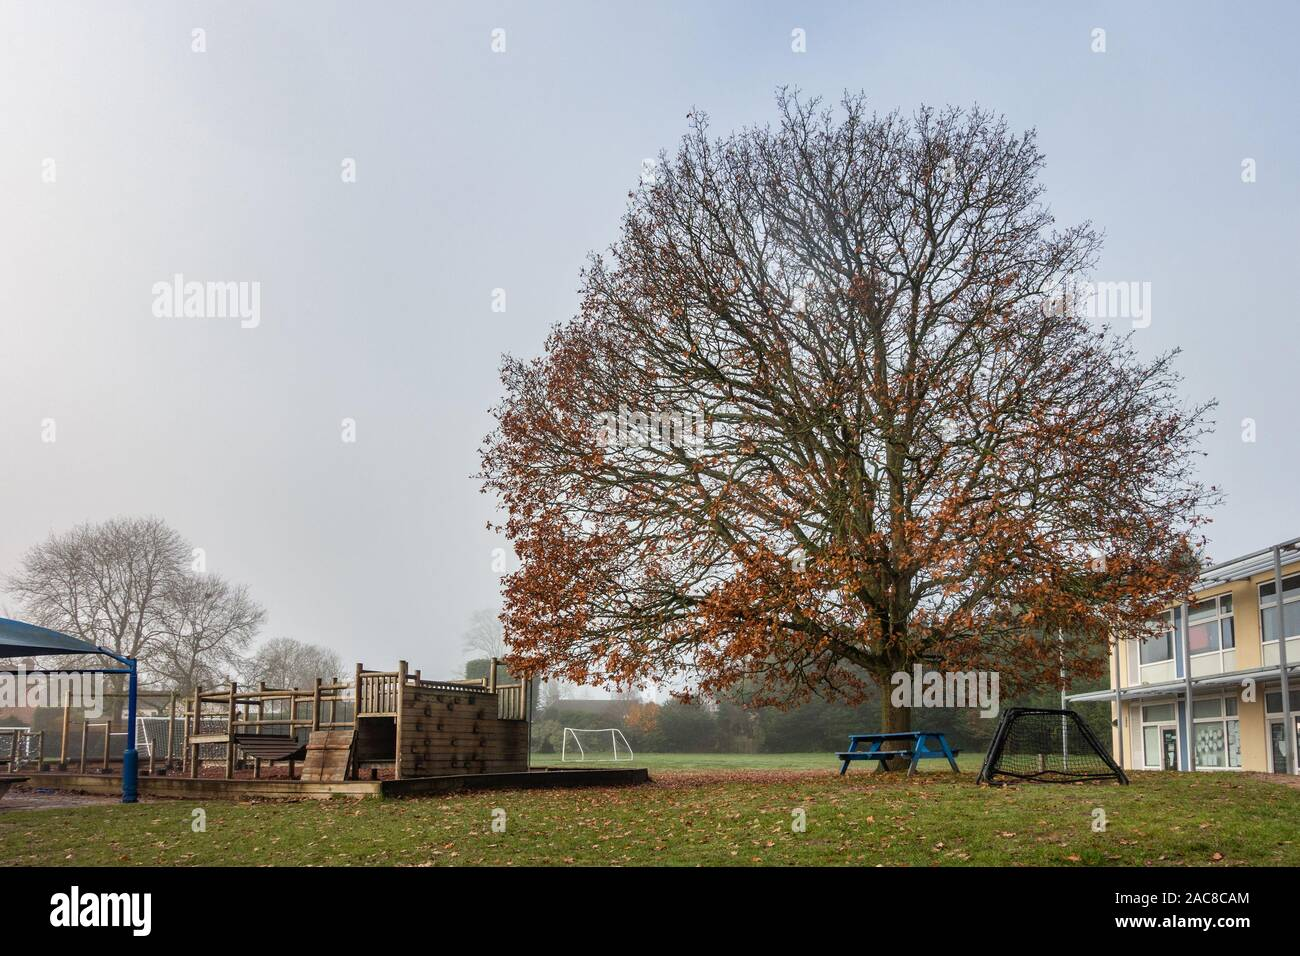 a-large-tree-in-a-school-playground-has-lost-most-of-its-leaves-at-the-end-of-autumn-or-early-winter-2AC8CAM.jpg